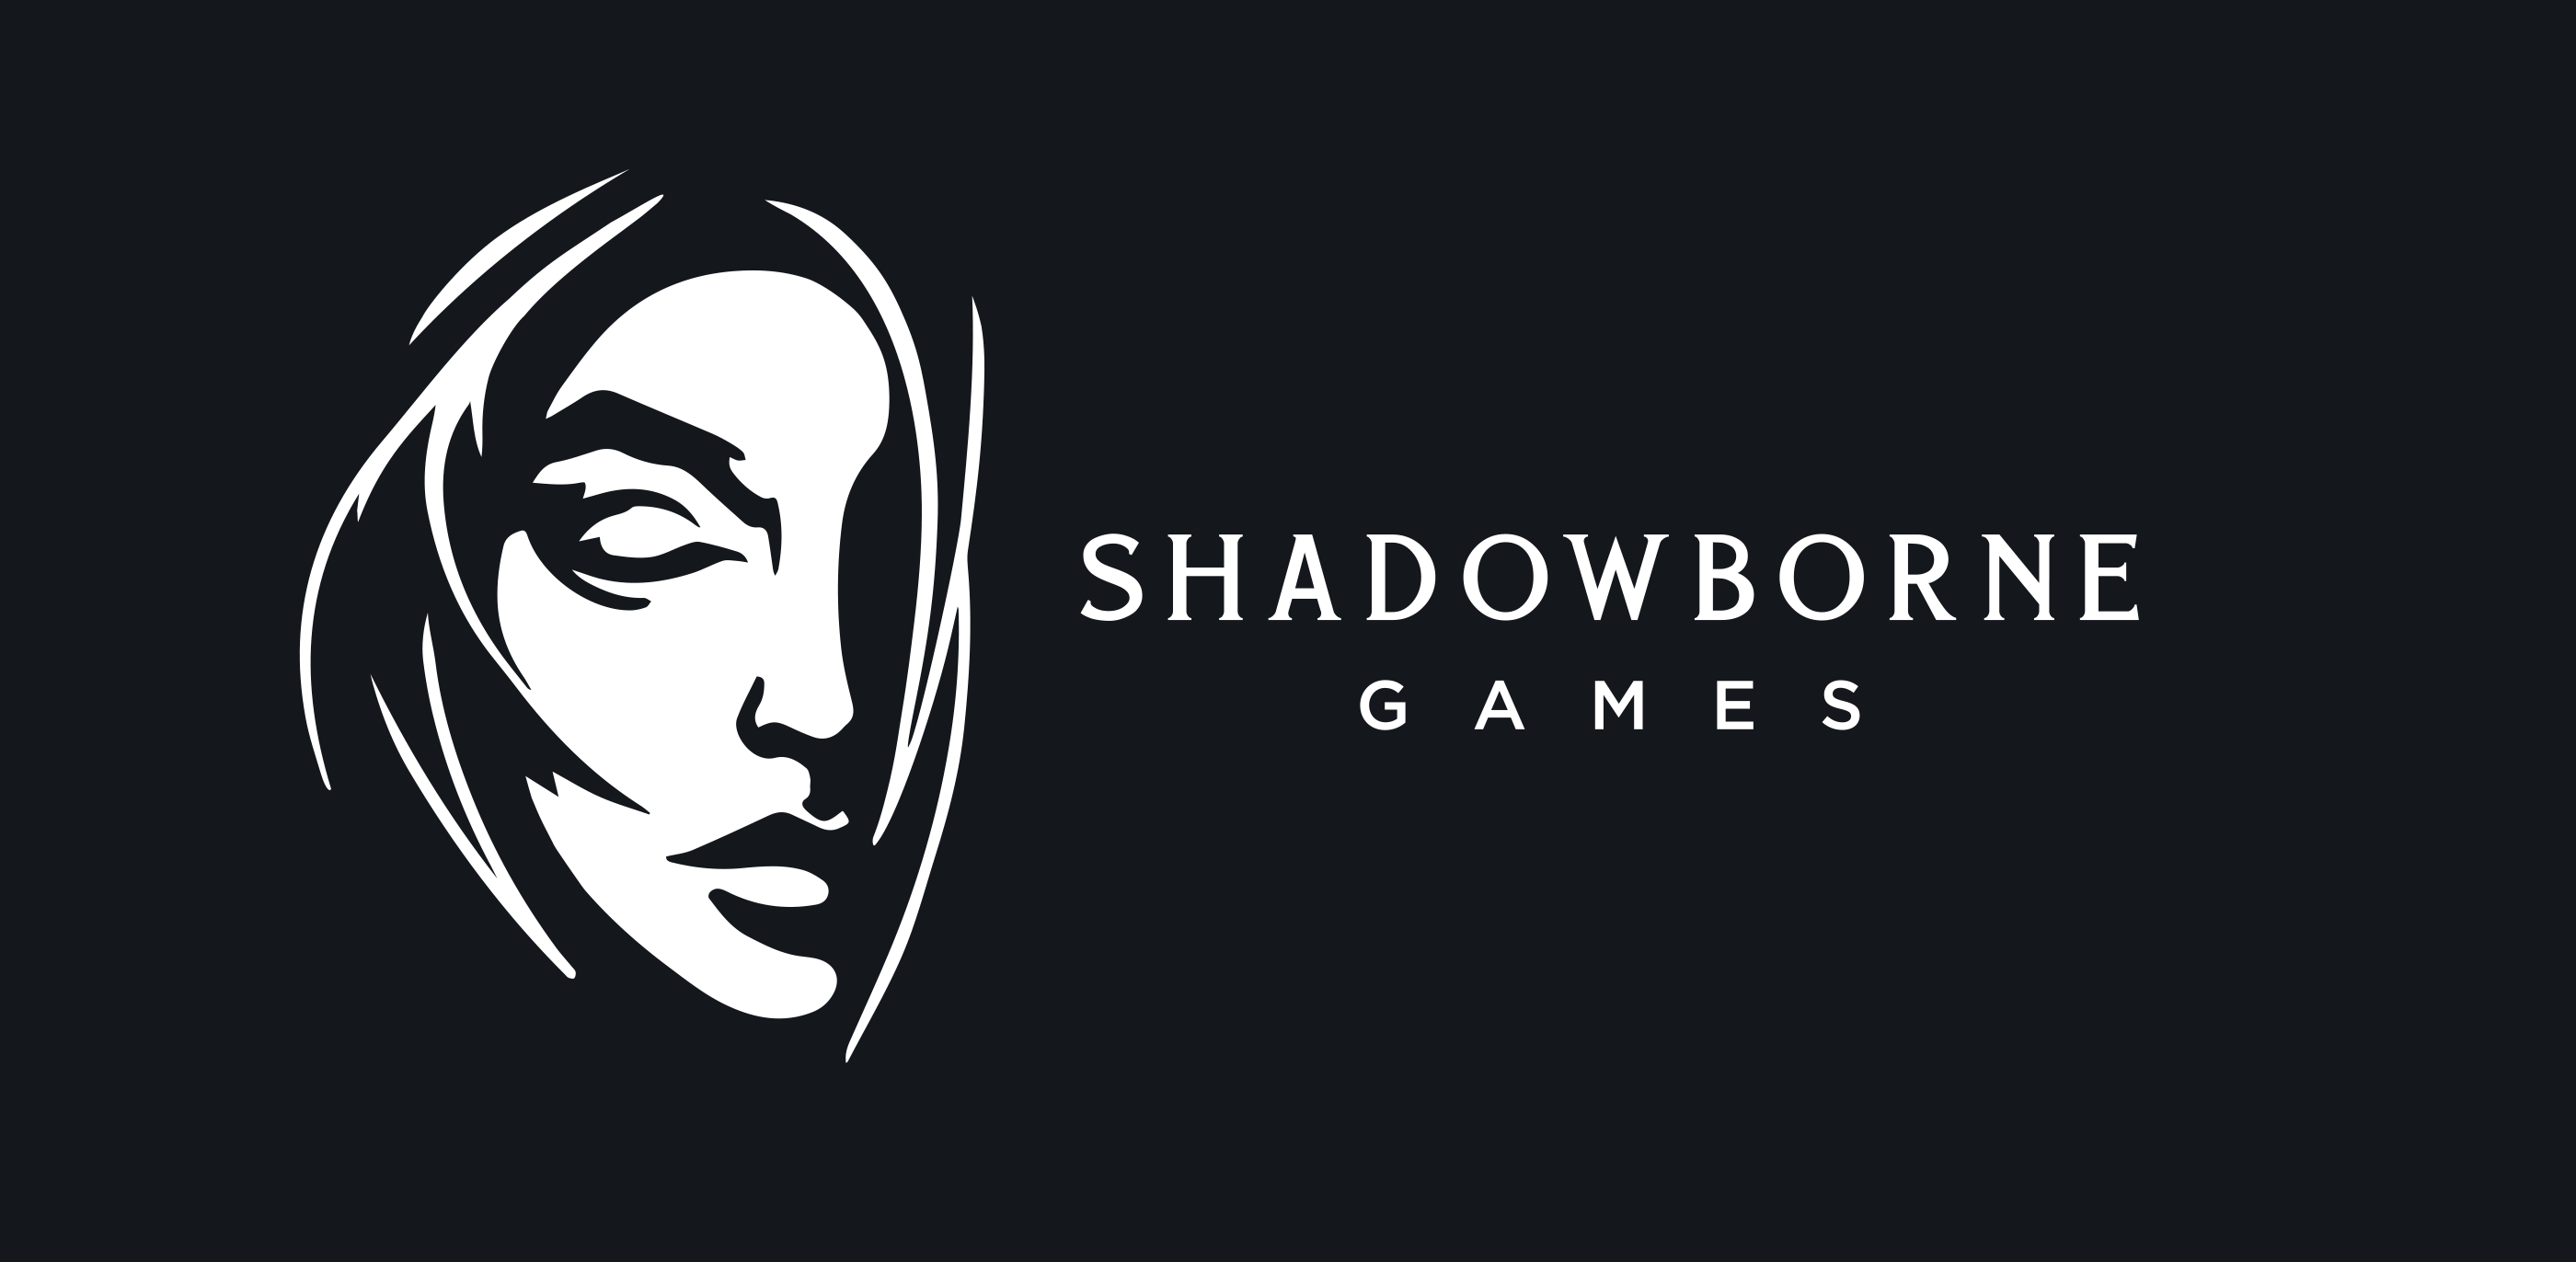 Shadowborne Games